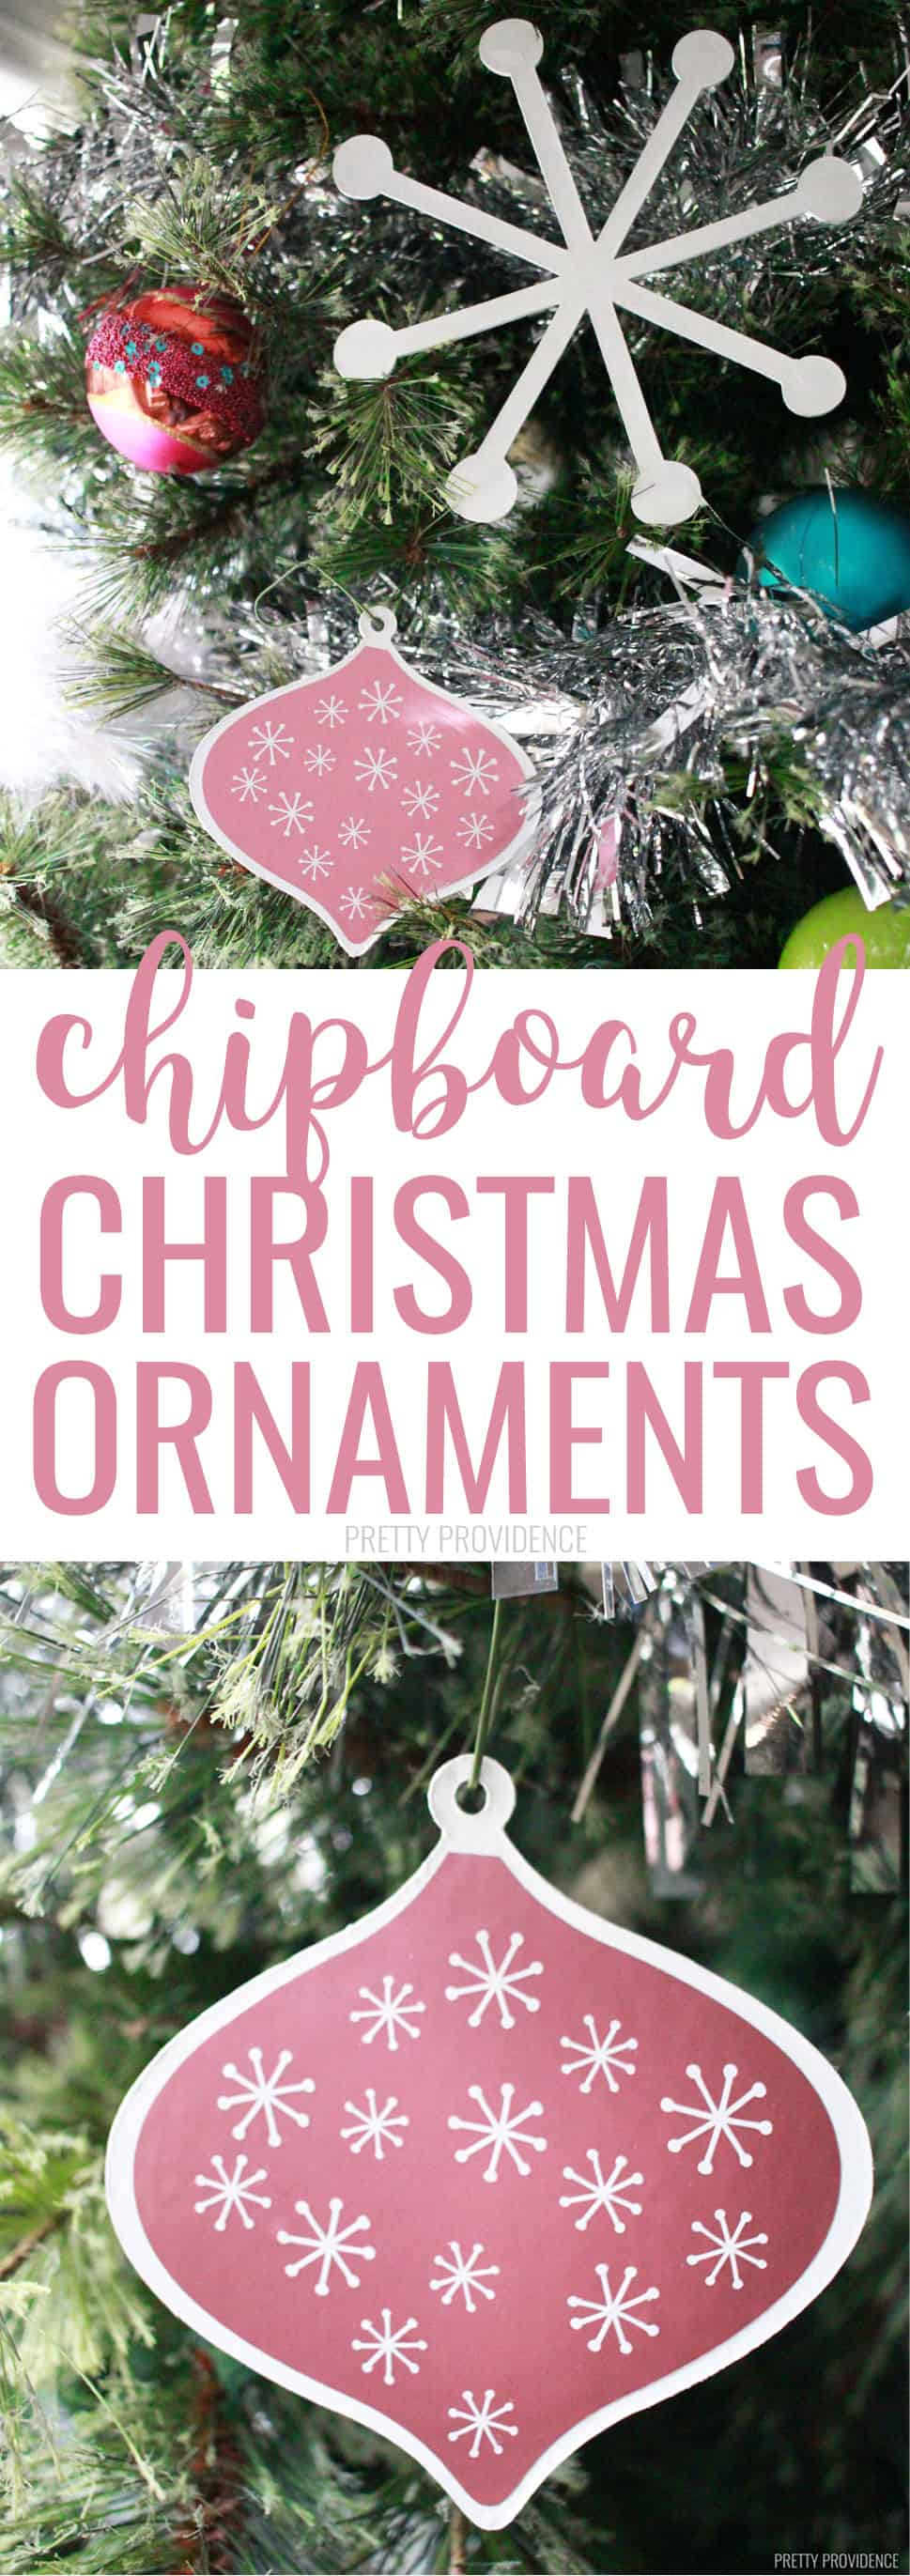 These DIY chipboard Christmas ornaments are so fun! Use any color of vinyl to decorate them! 